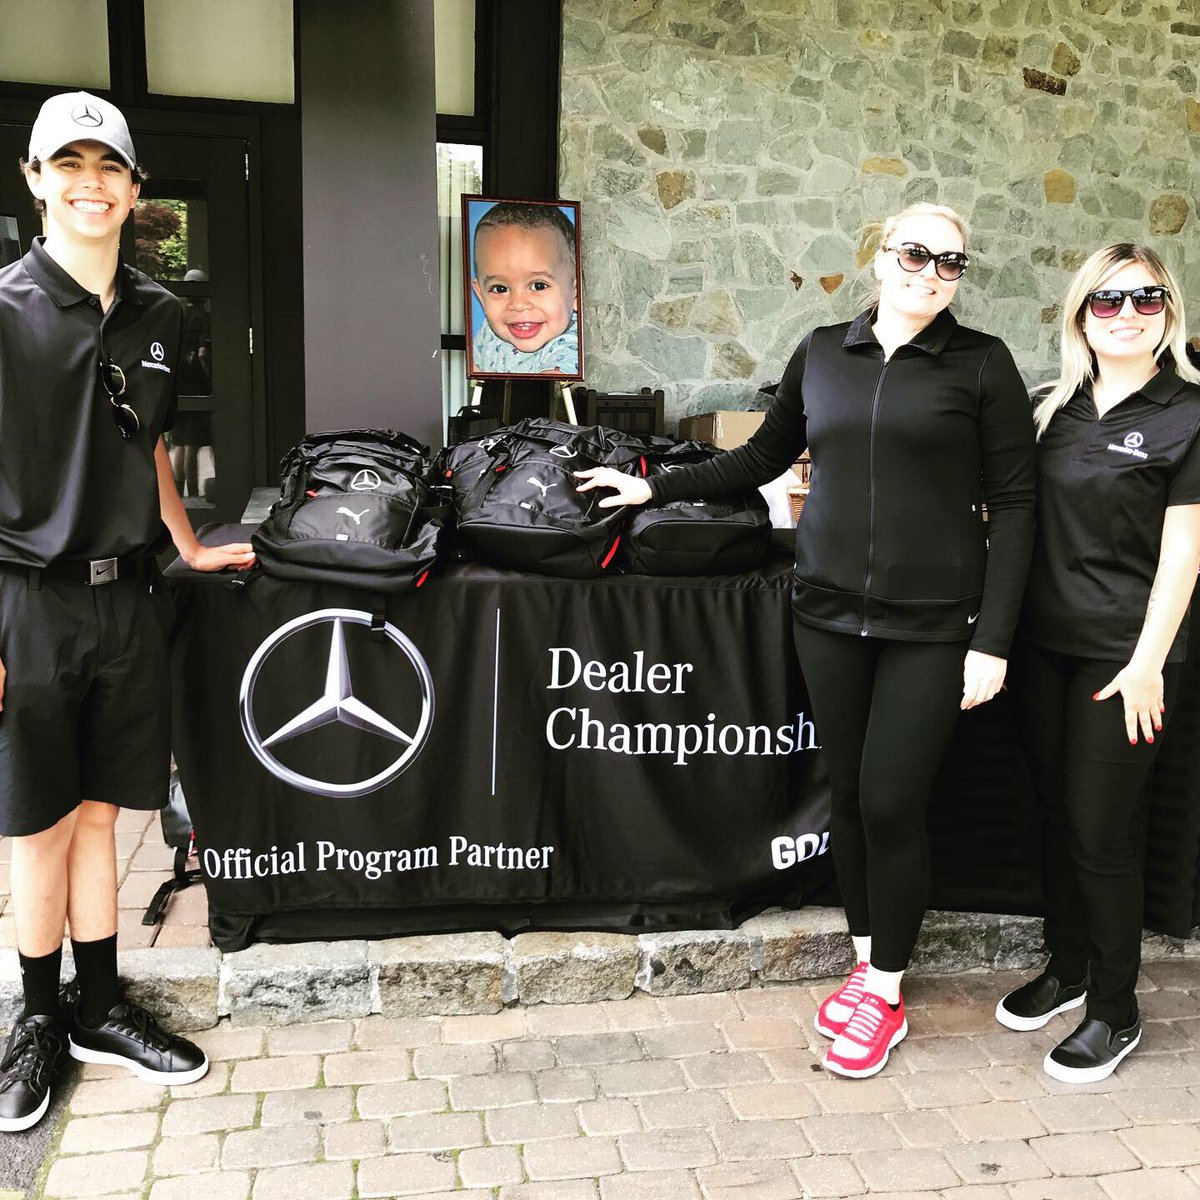 31st Annual Jawonio Foundation Golf Outing at @ParamountCC_NY Special thanks to Sheri Benecke and @MBNanuetfor the beautiful golfer backpacks, trophies and prizes. We will be excited to see who gets to go to #Pinehurst for the Mercedes-Benz Championship Playoffs.pic.twitter.com/tO7YGCAYzg